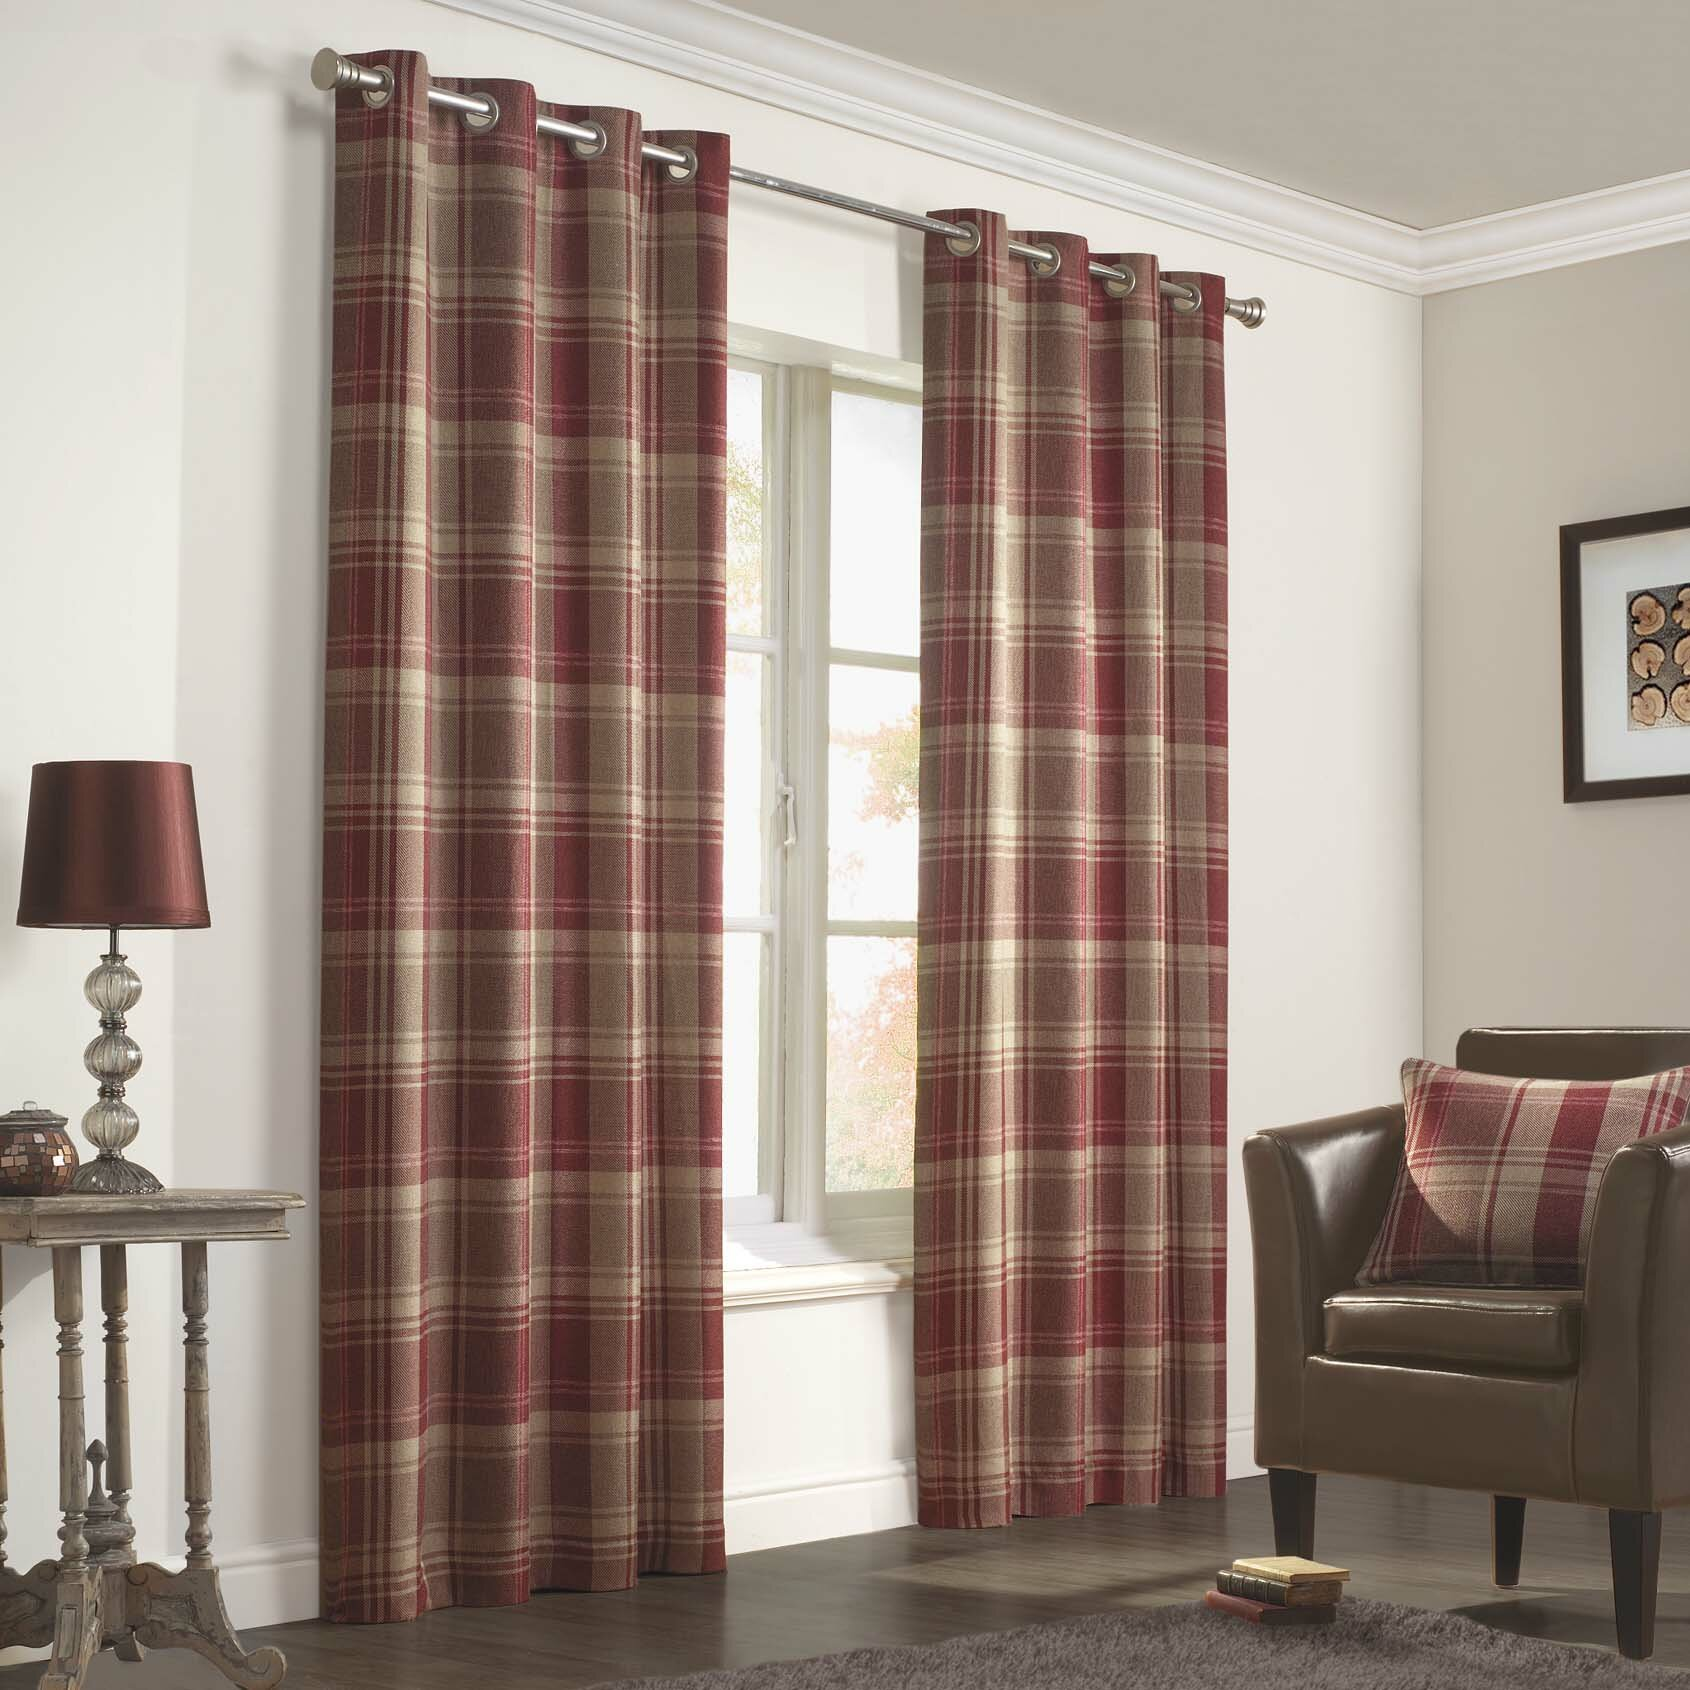 Brown plaid curtain panels - Inverness Curtain Panels